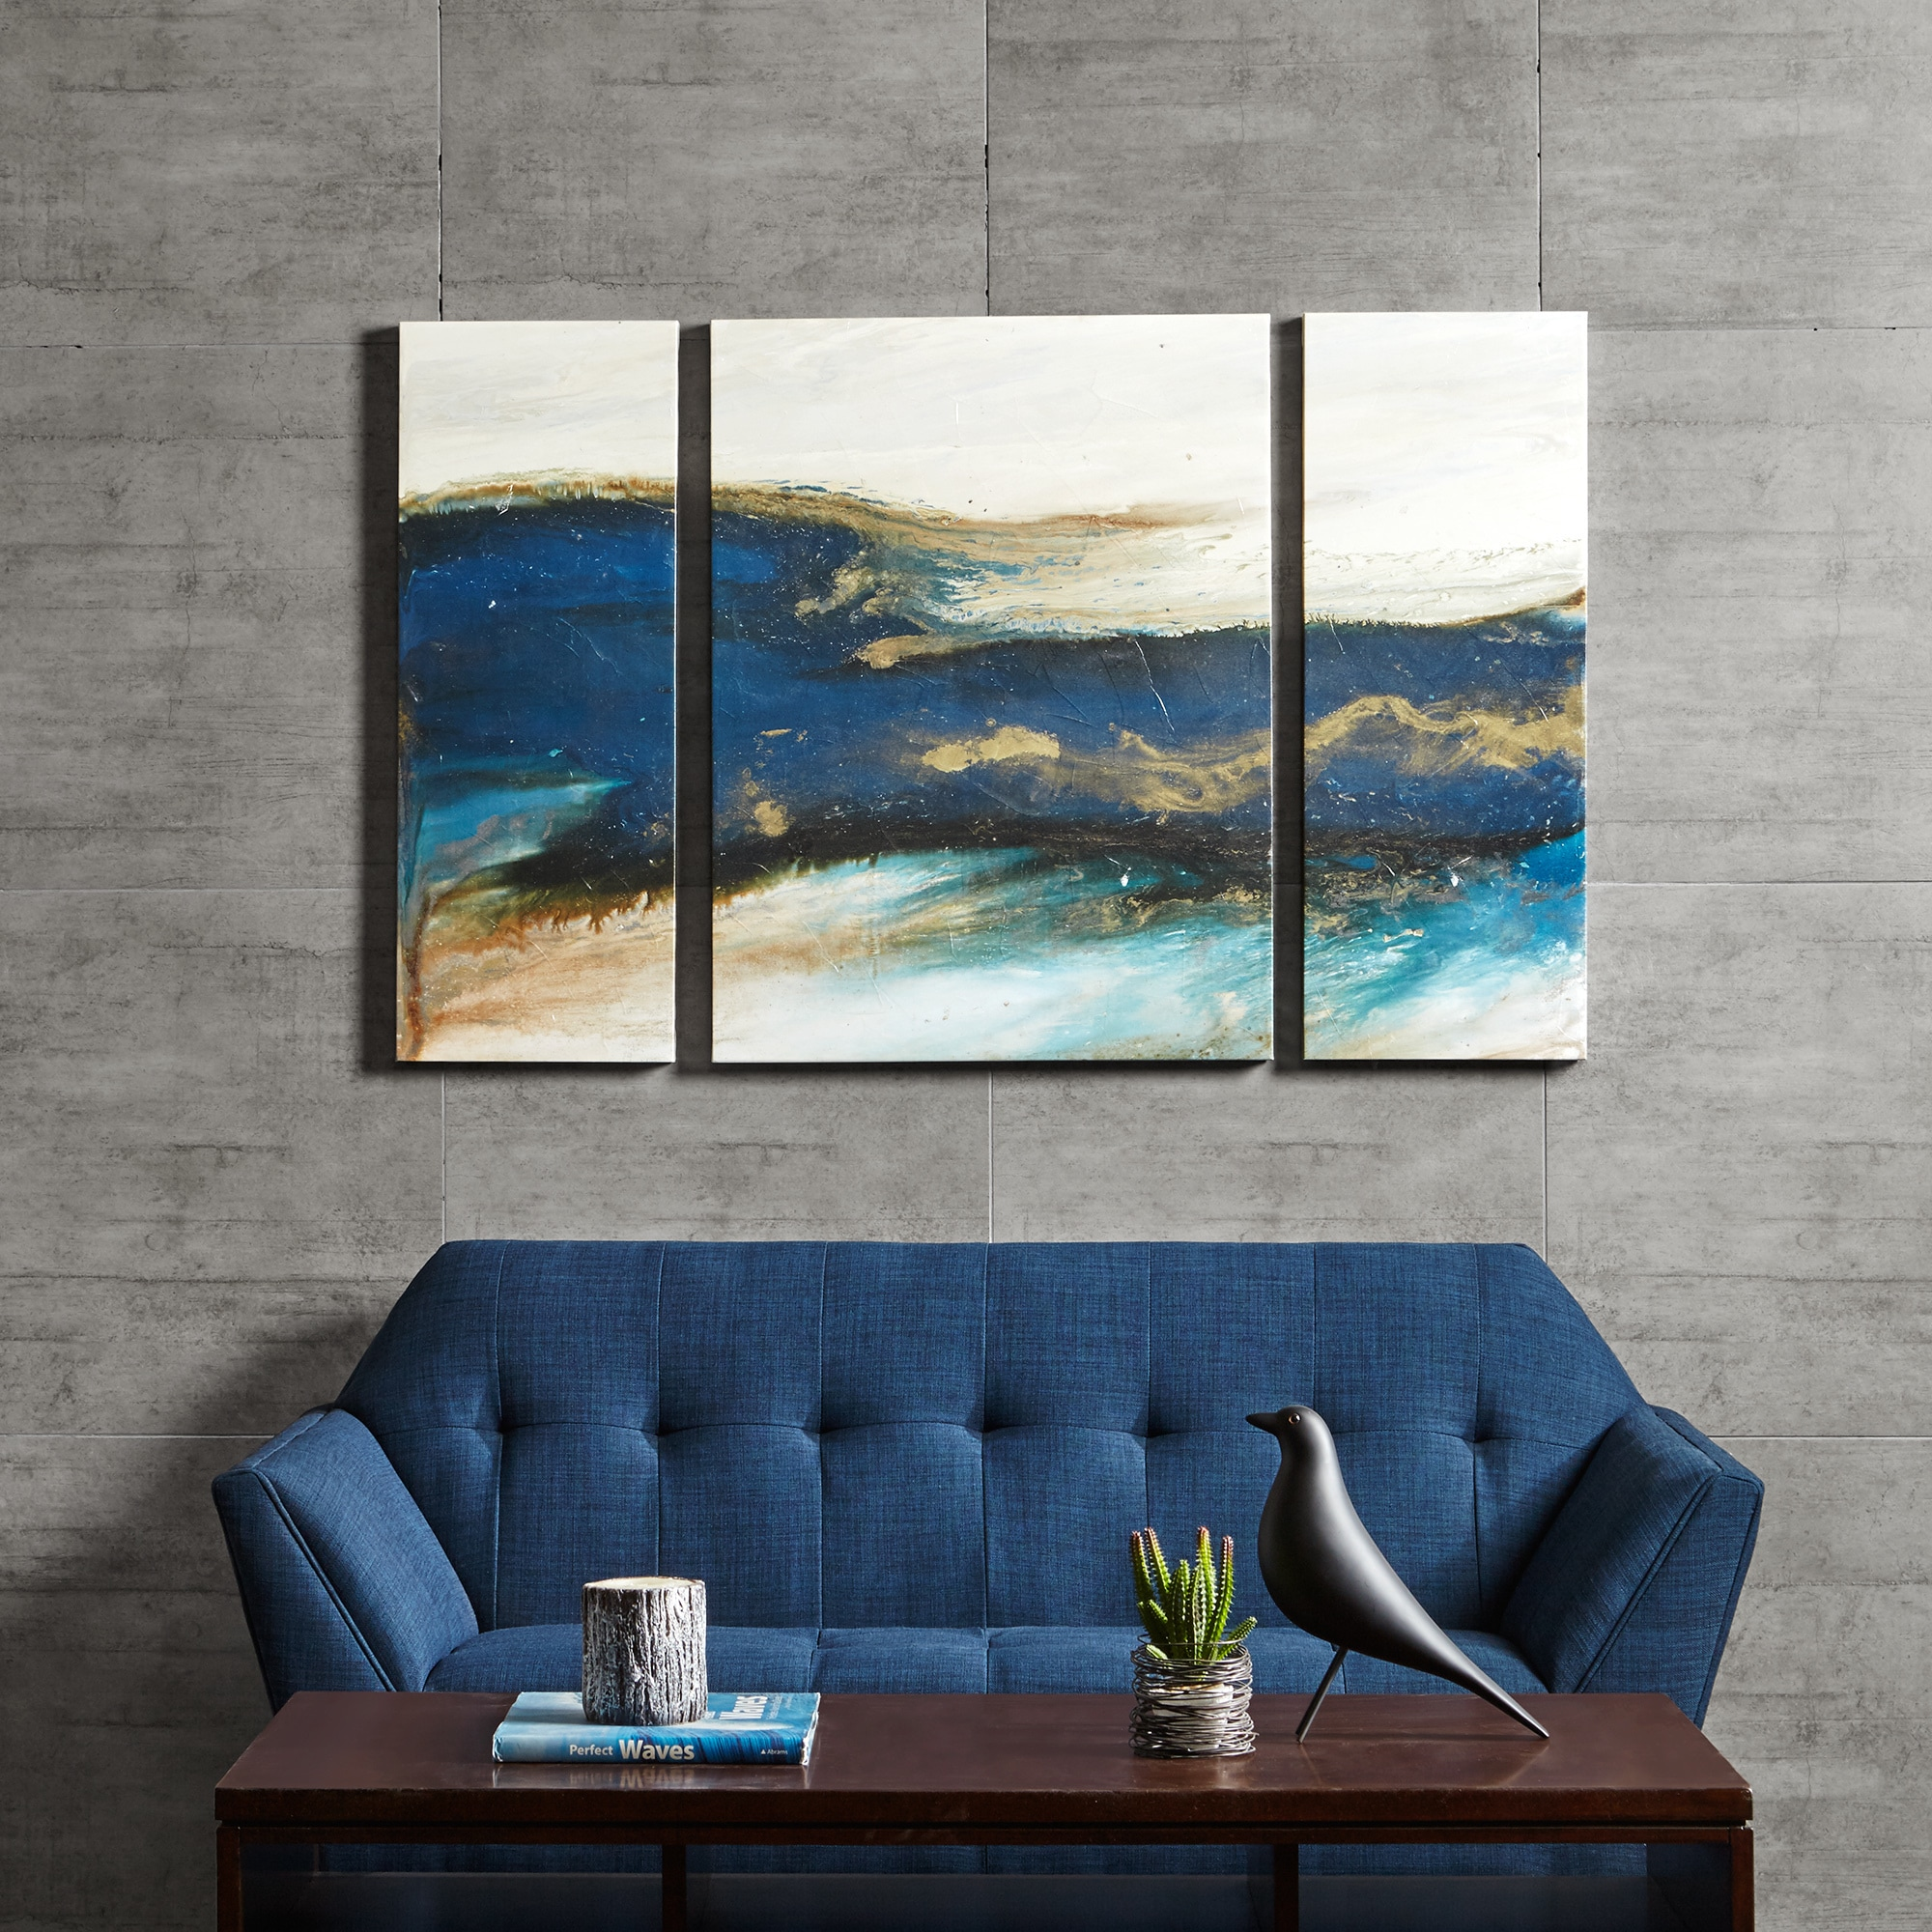 Abstract Art Gallery Shop Our Best Home Goods Deals Online